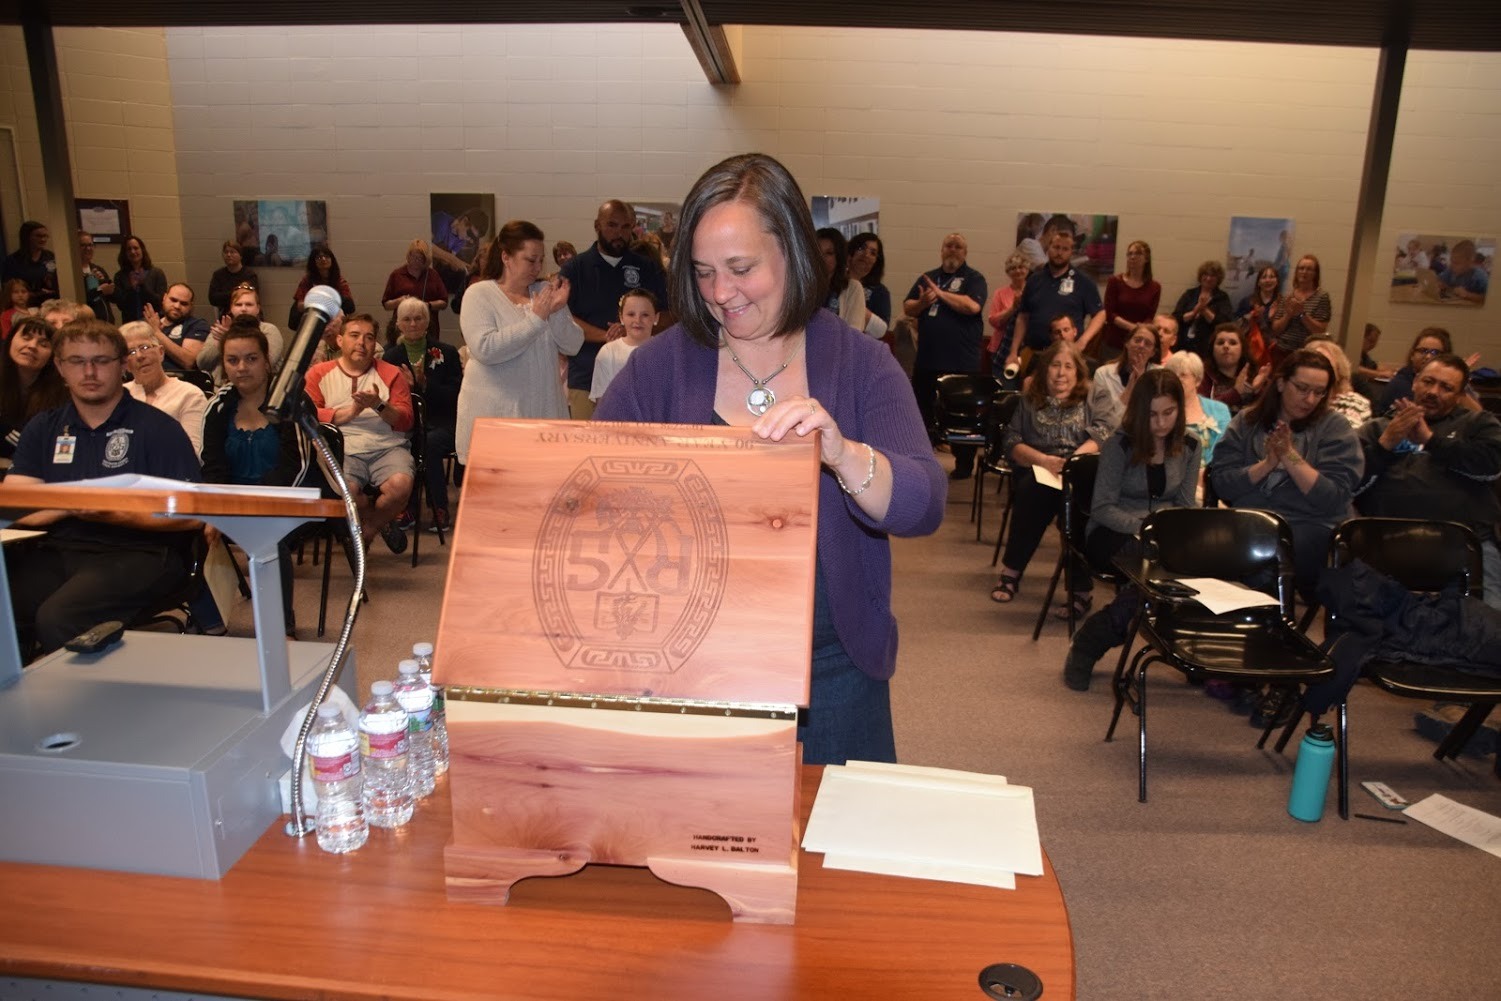 Time Capsule Steals the Show at Sweetwater #1 School Board